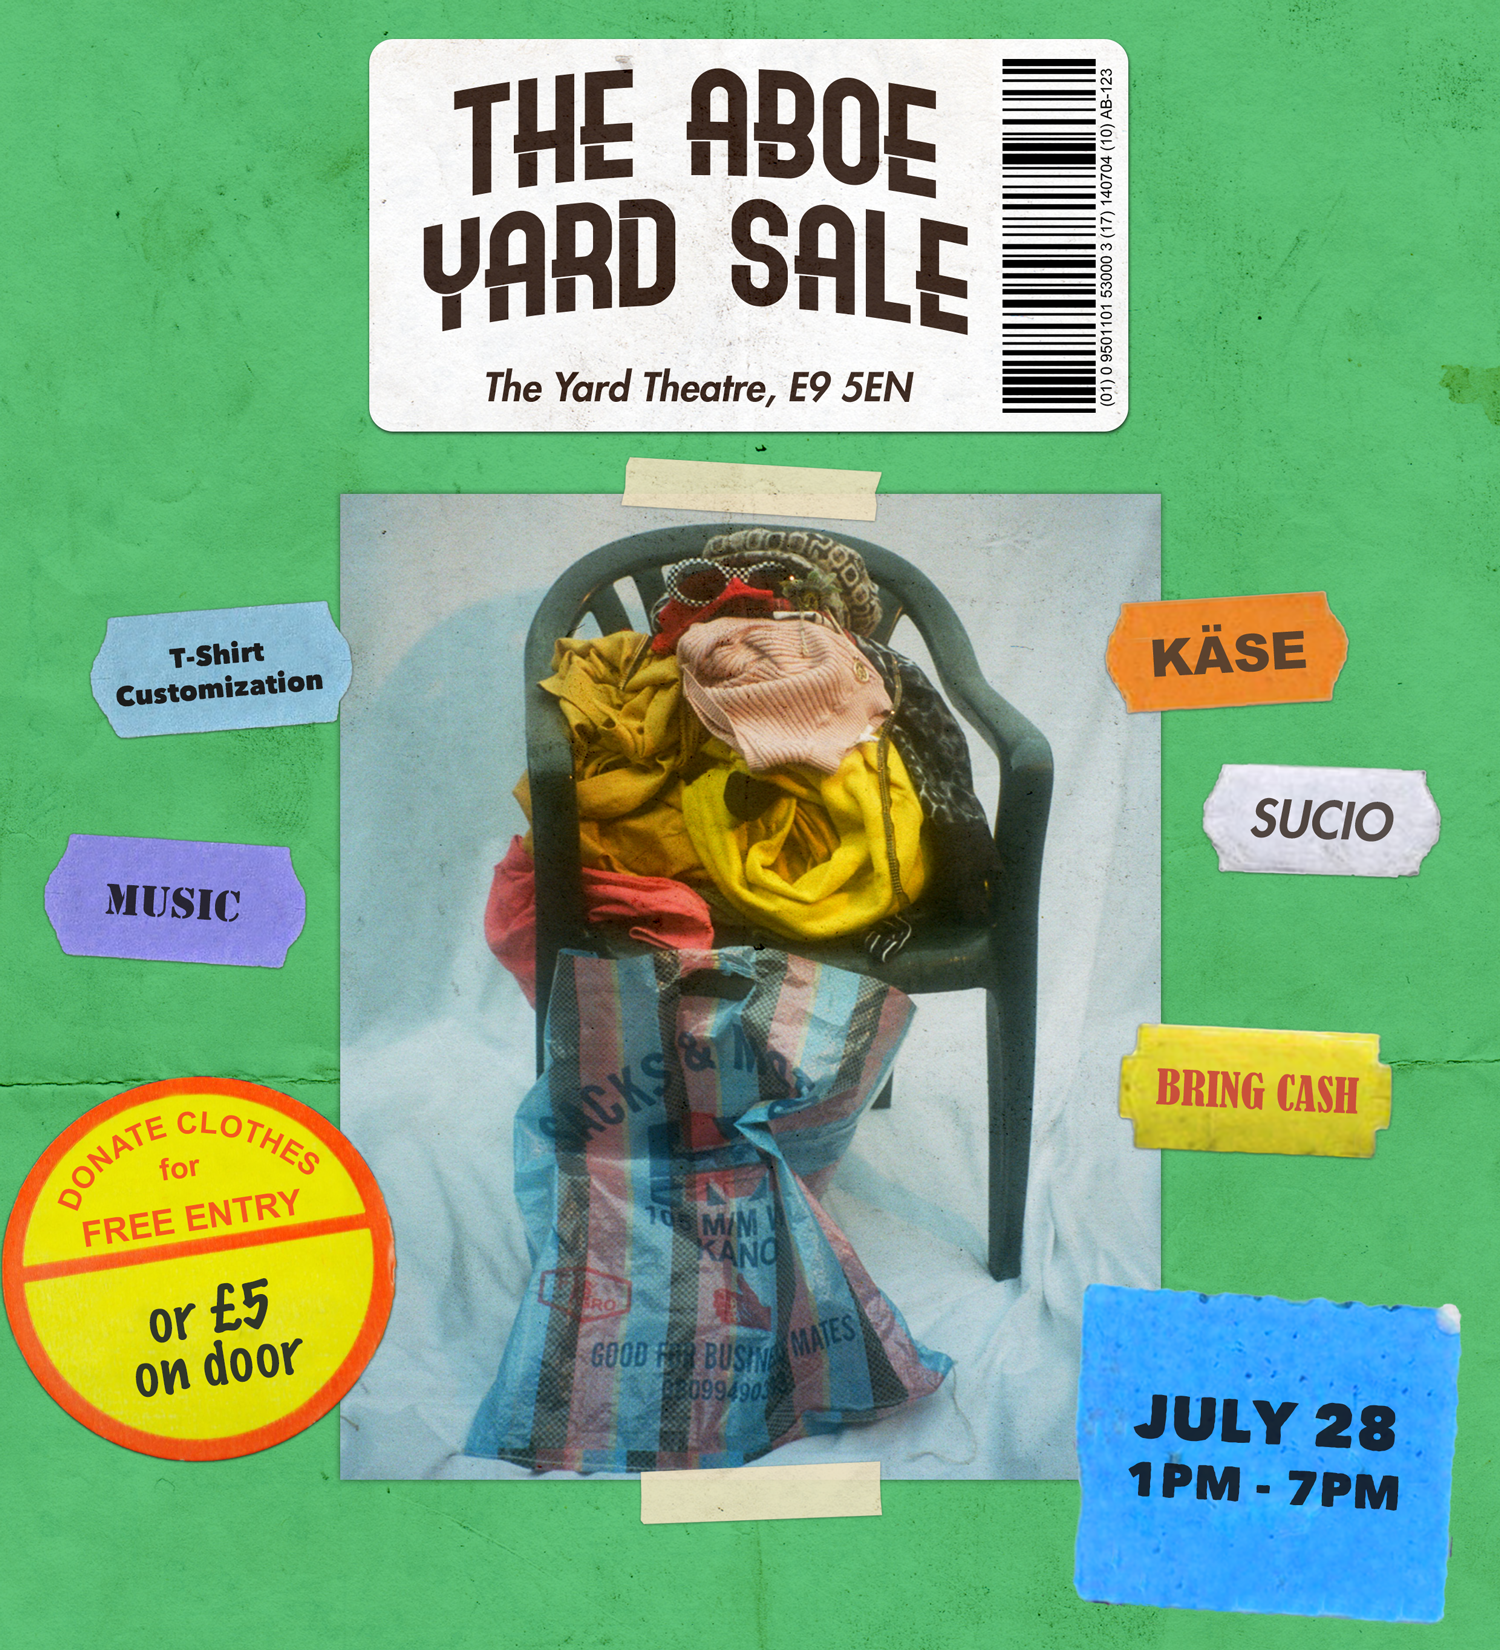 The ABOE Yard Sale will be a day event for selling, customising and donating clothes. Free Entry if you bring an item of clothing to donate.